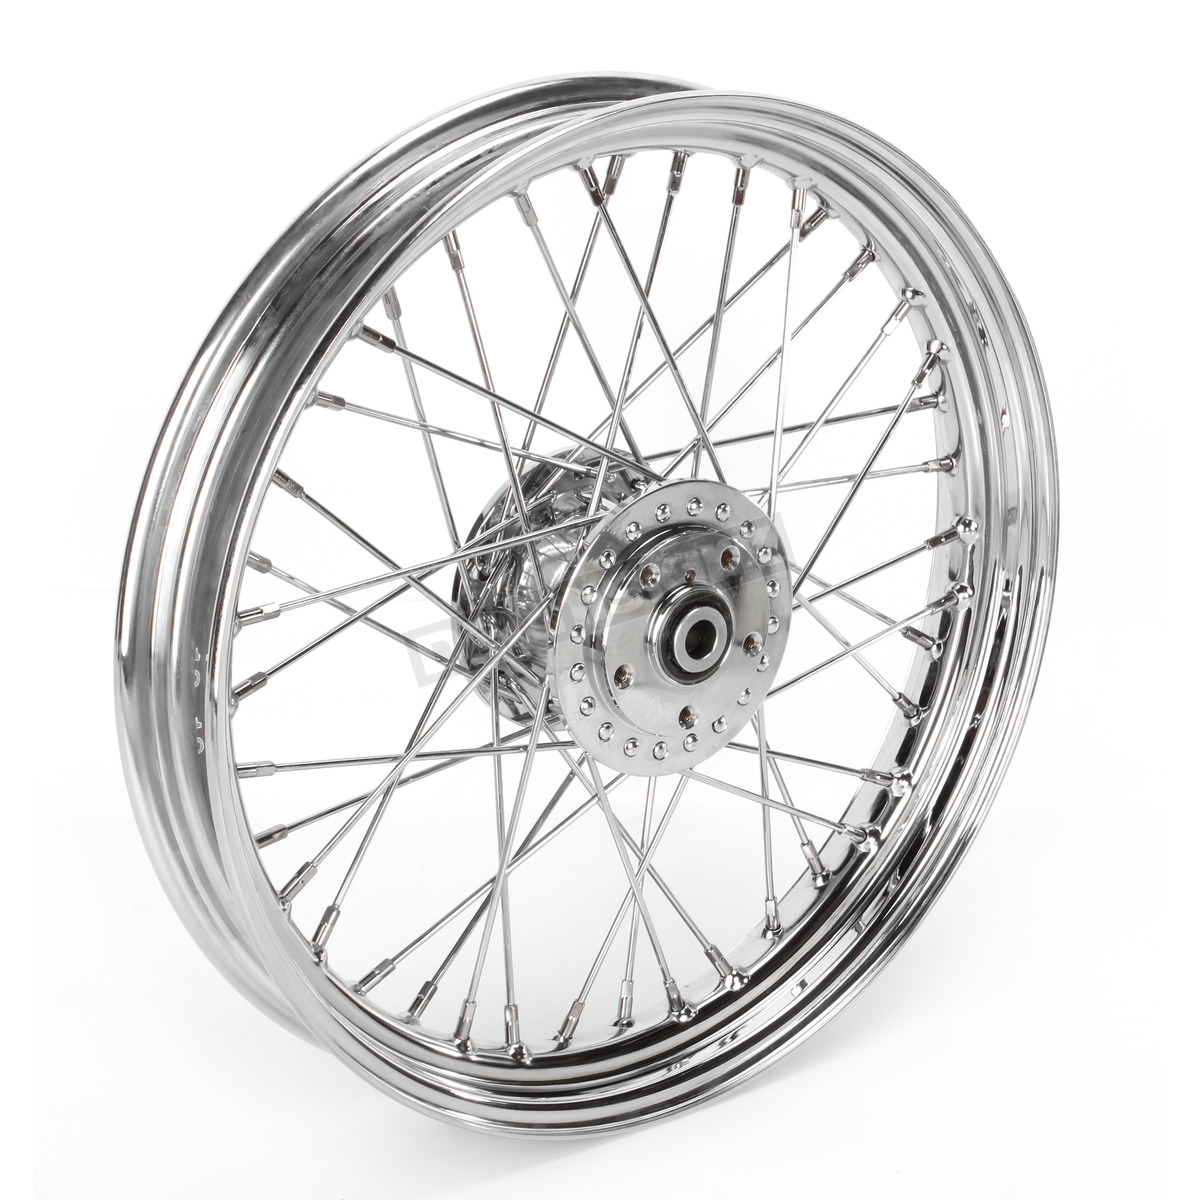 Chrome Front 19 x 2 5 40-Spoke Laced Wheel Assembly - 0203-0413